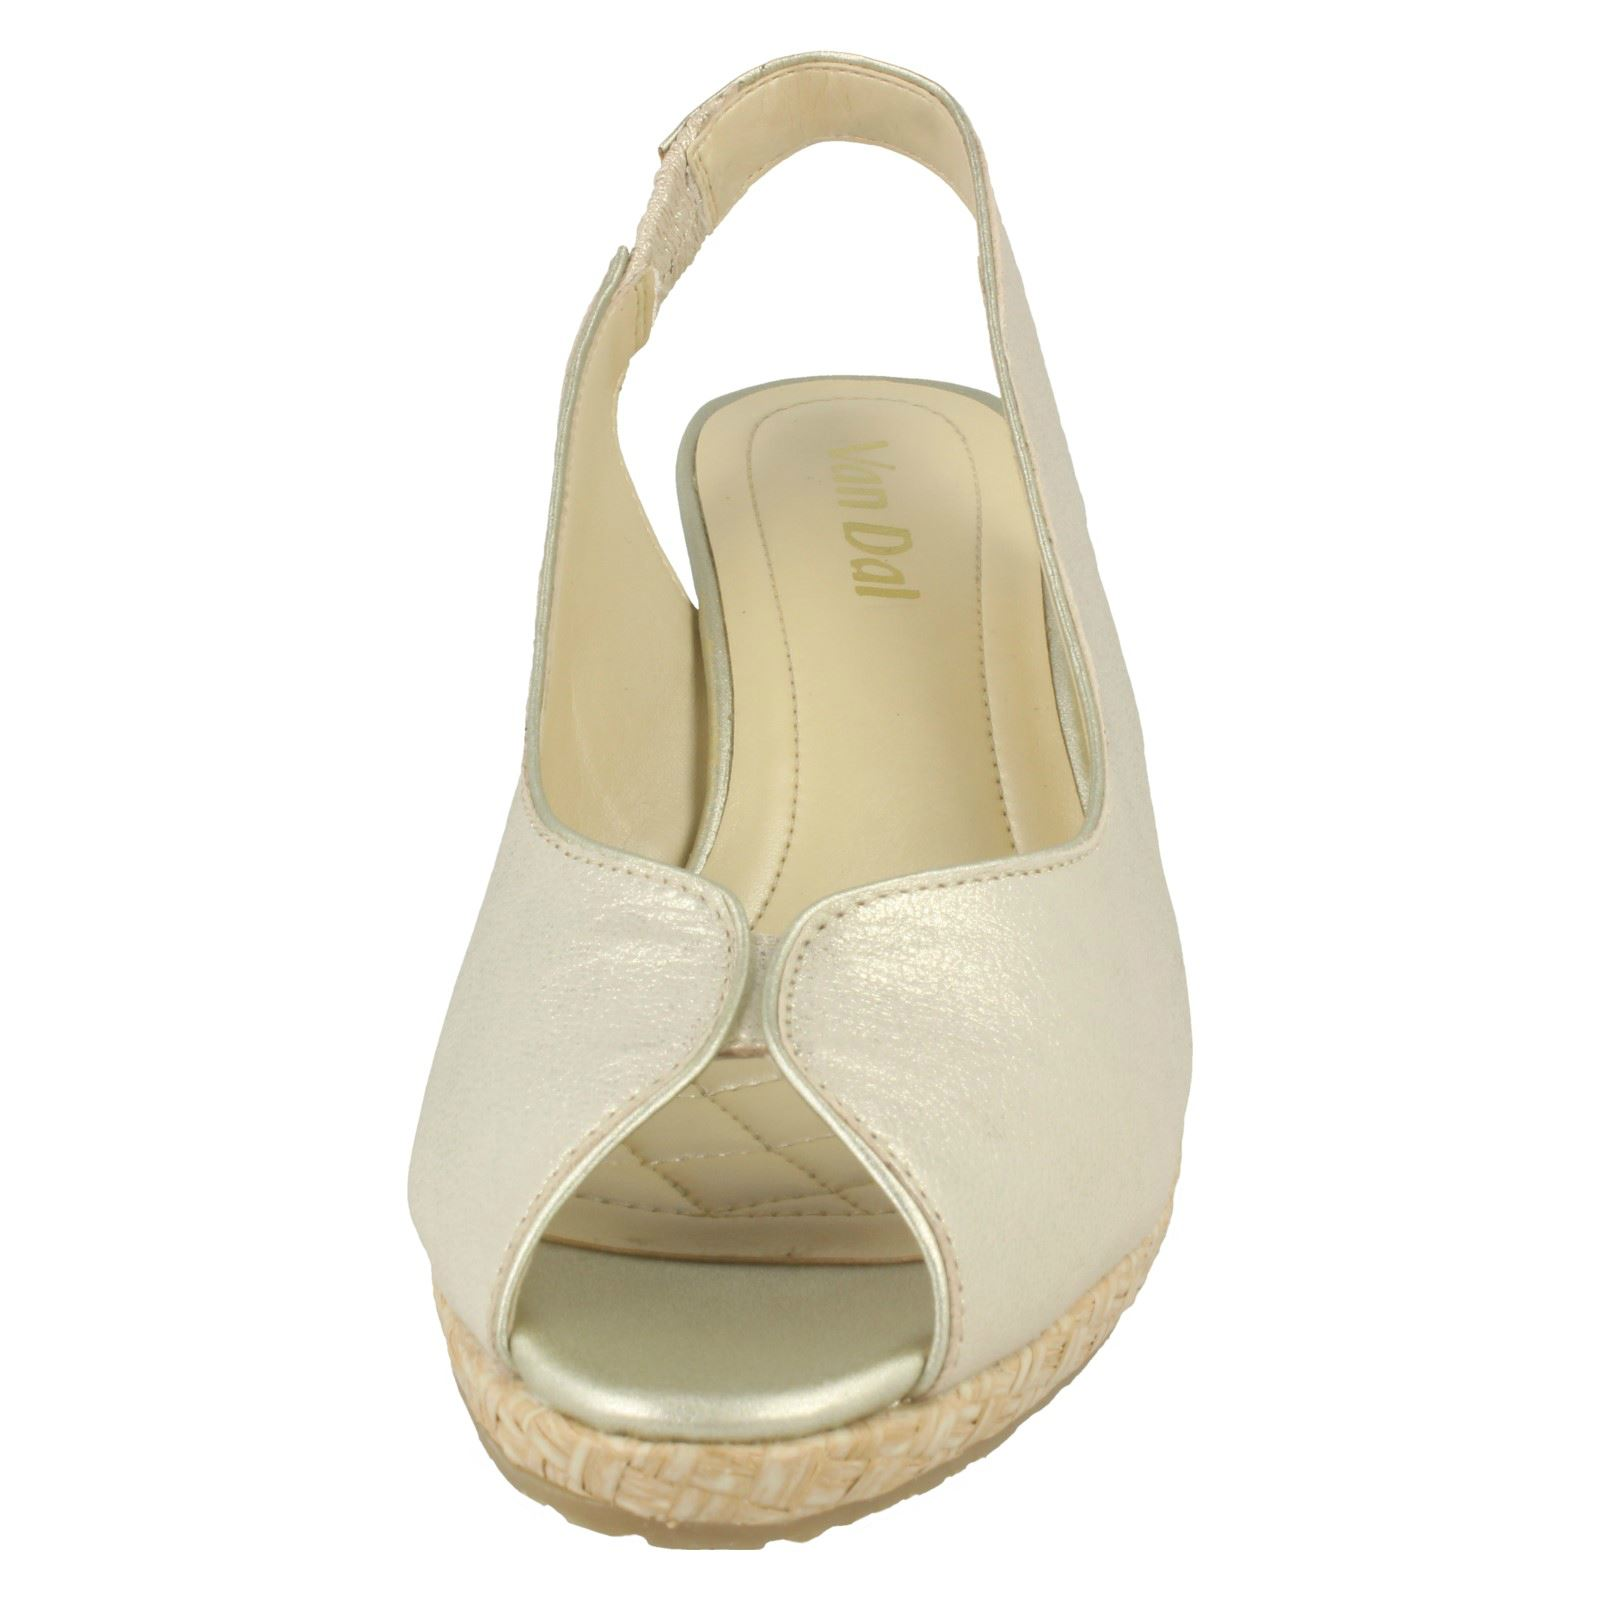 Ladies-Van-Dal-Leather-Wedge-Sandal-With-Woven-Detail-Avalon thumbnail 17